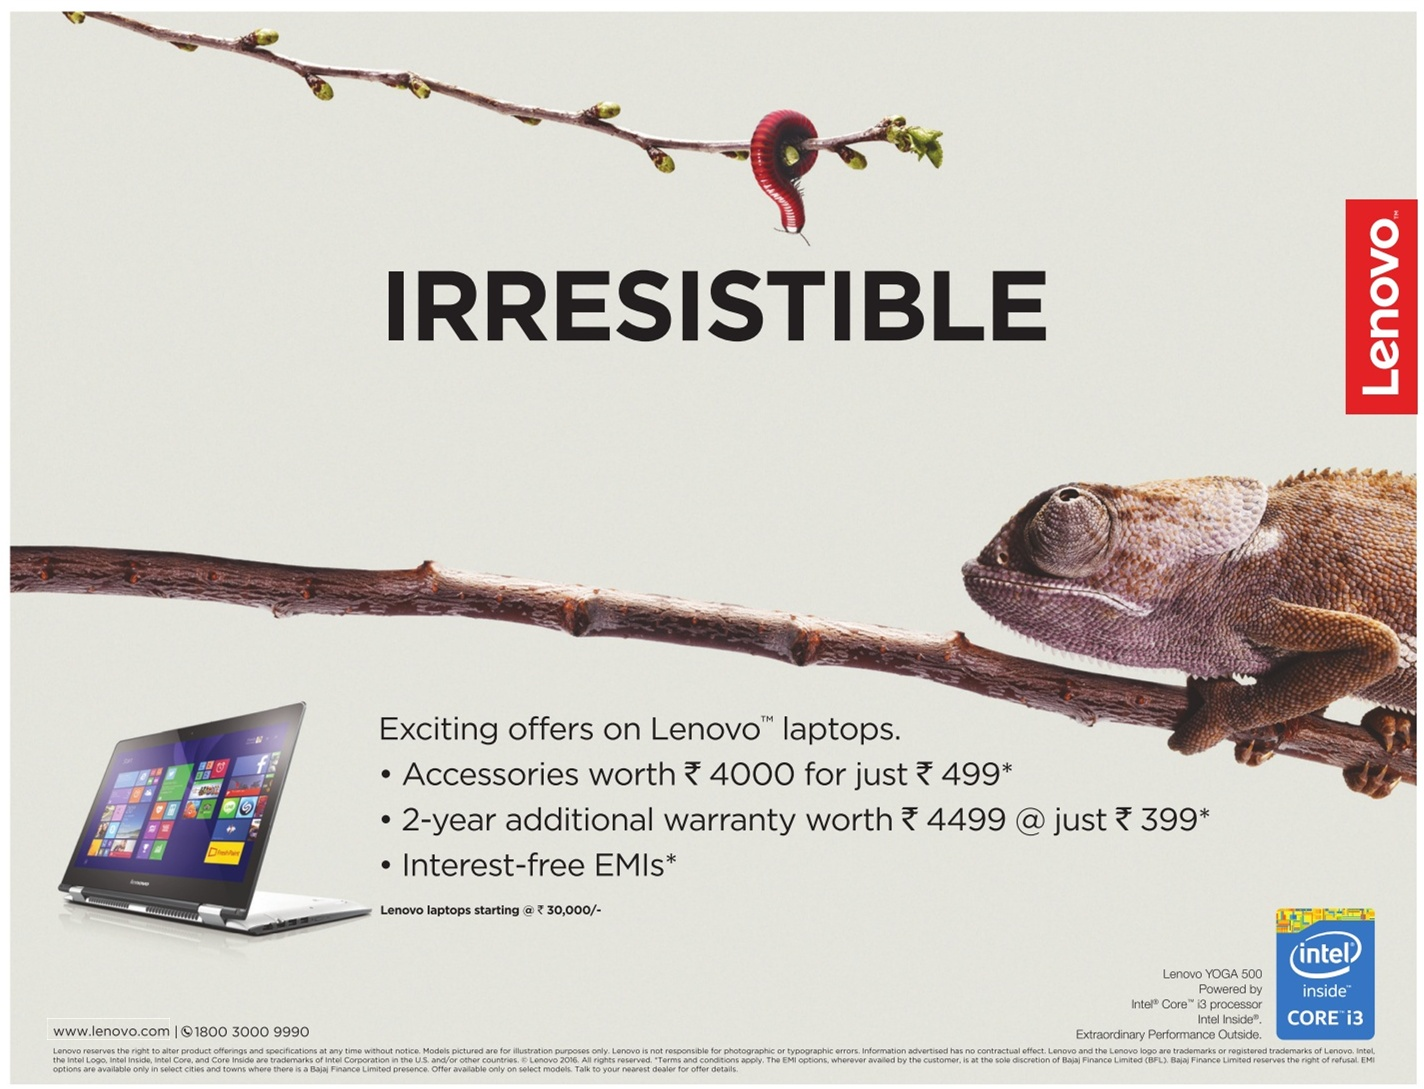 Exciting offers on Lenovo laptops. | April 2016 discount offer